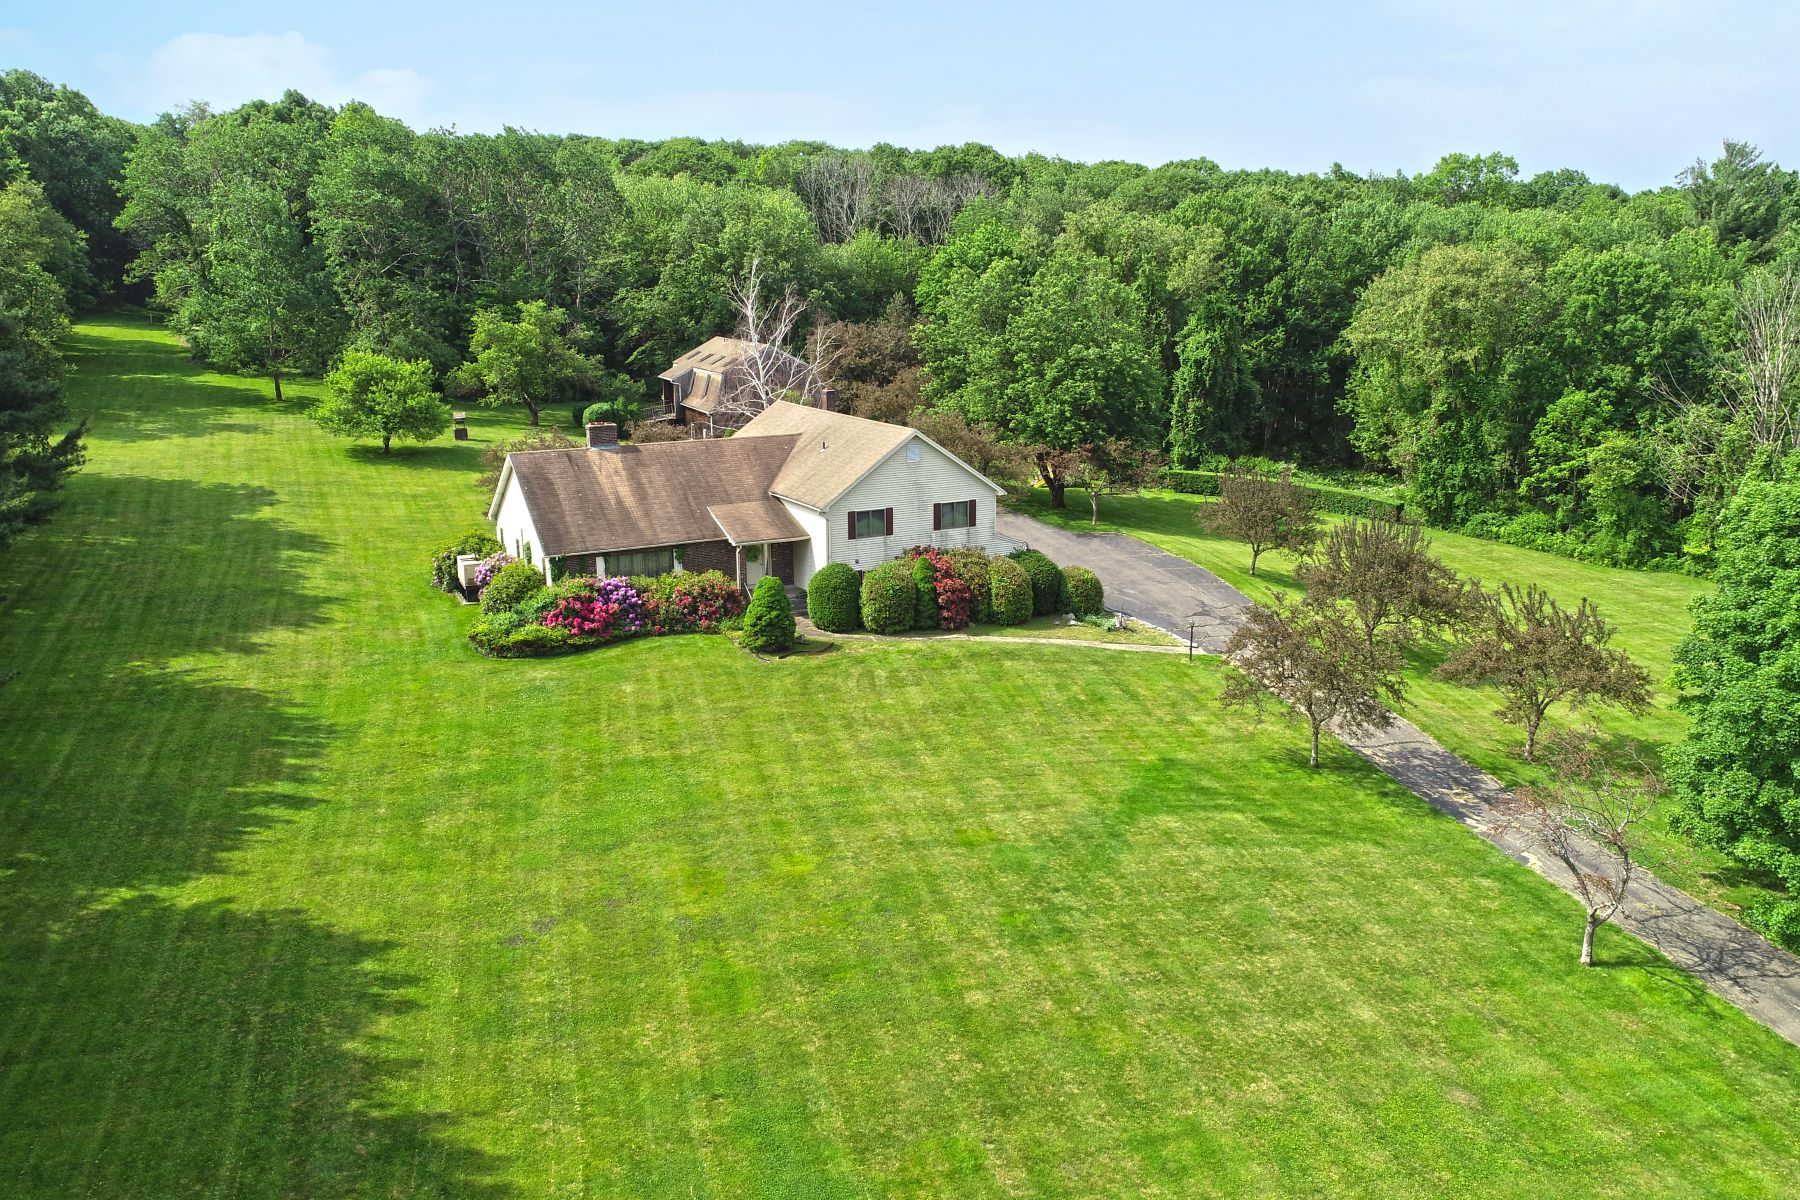 Single Family Homes for Sale at Located on 9 Acres, Close to Hiking Trails! 660 Birch Mountain Road Manchester, Connecticut 06040 United States